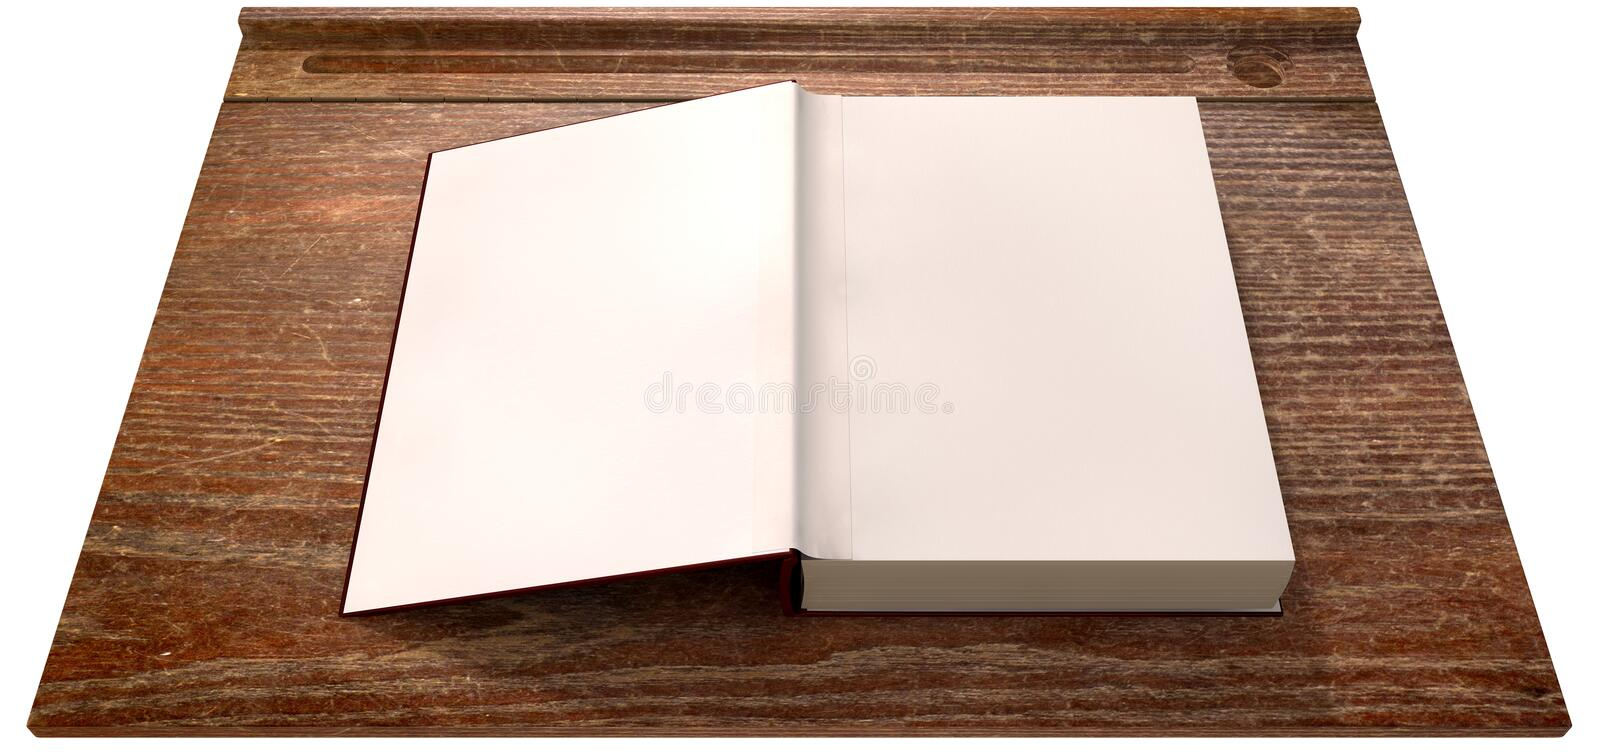 Vintage School Desk Top With Open Blank Book stock photo